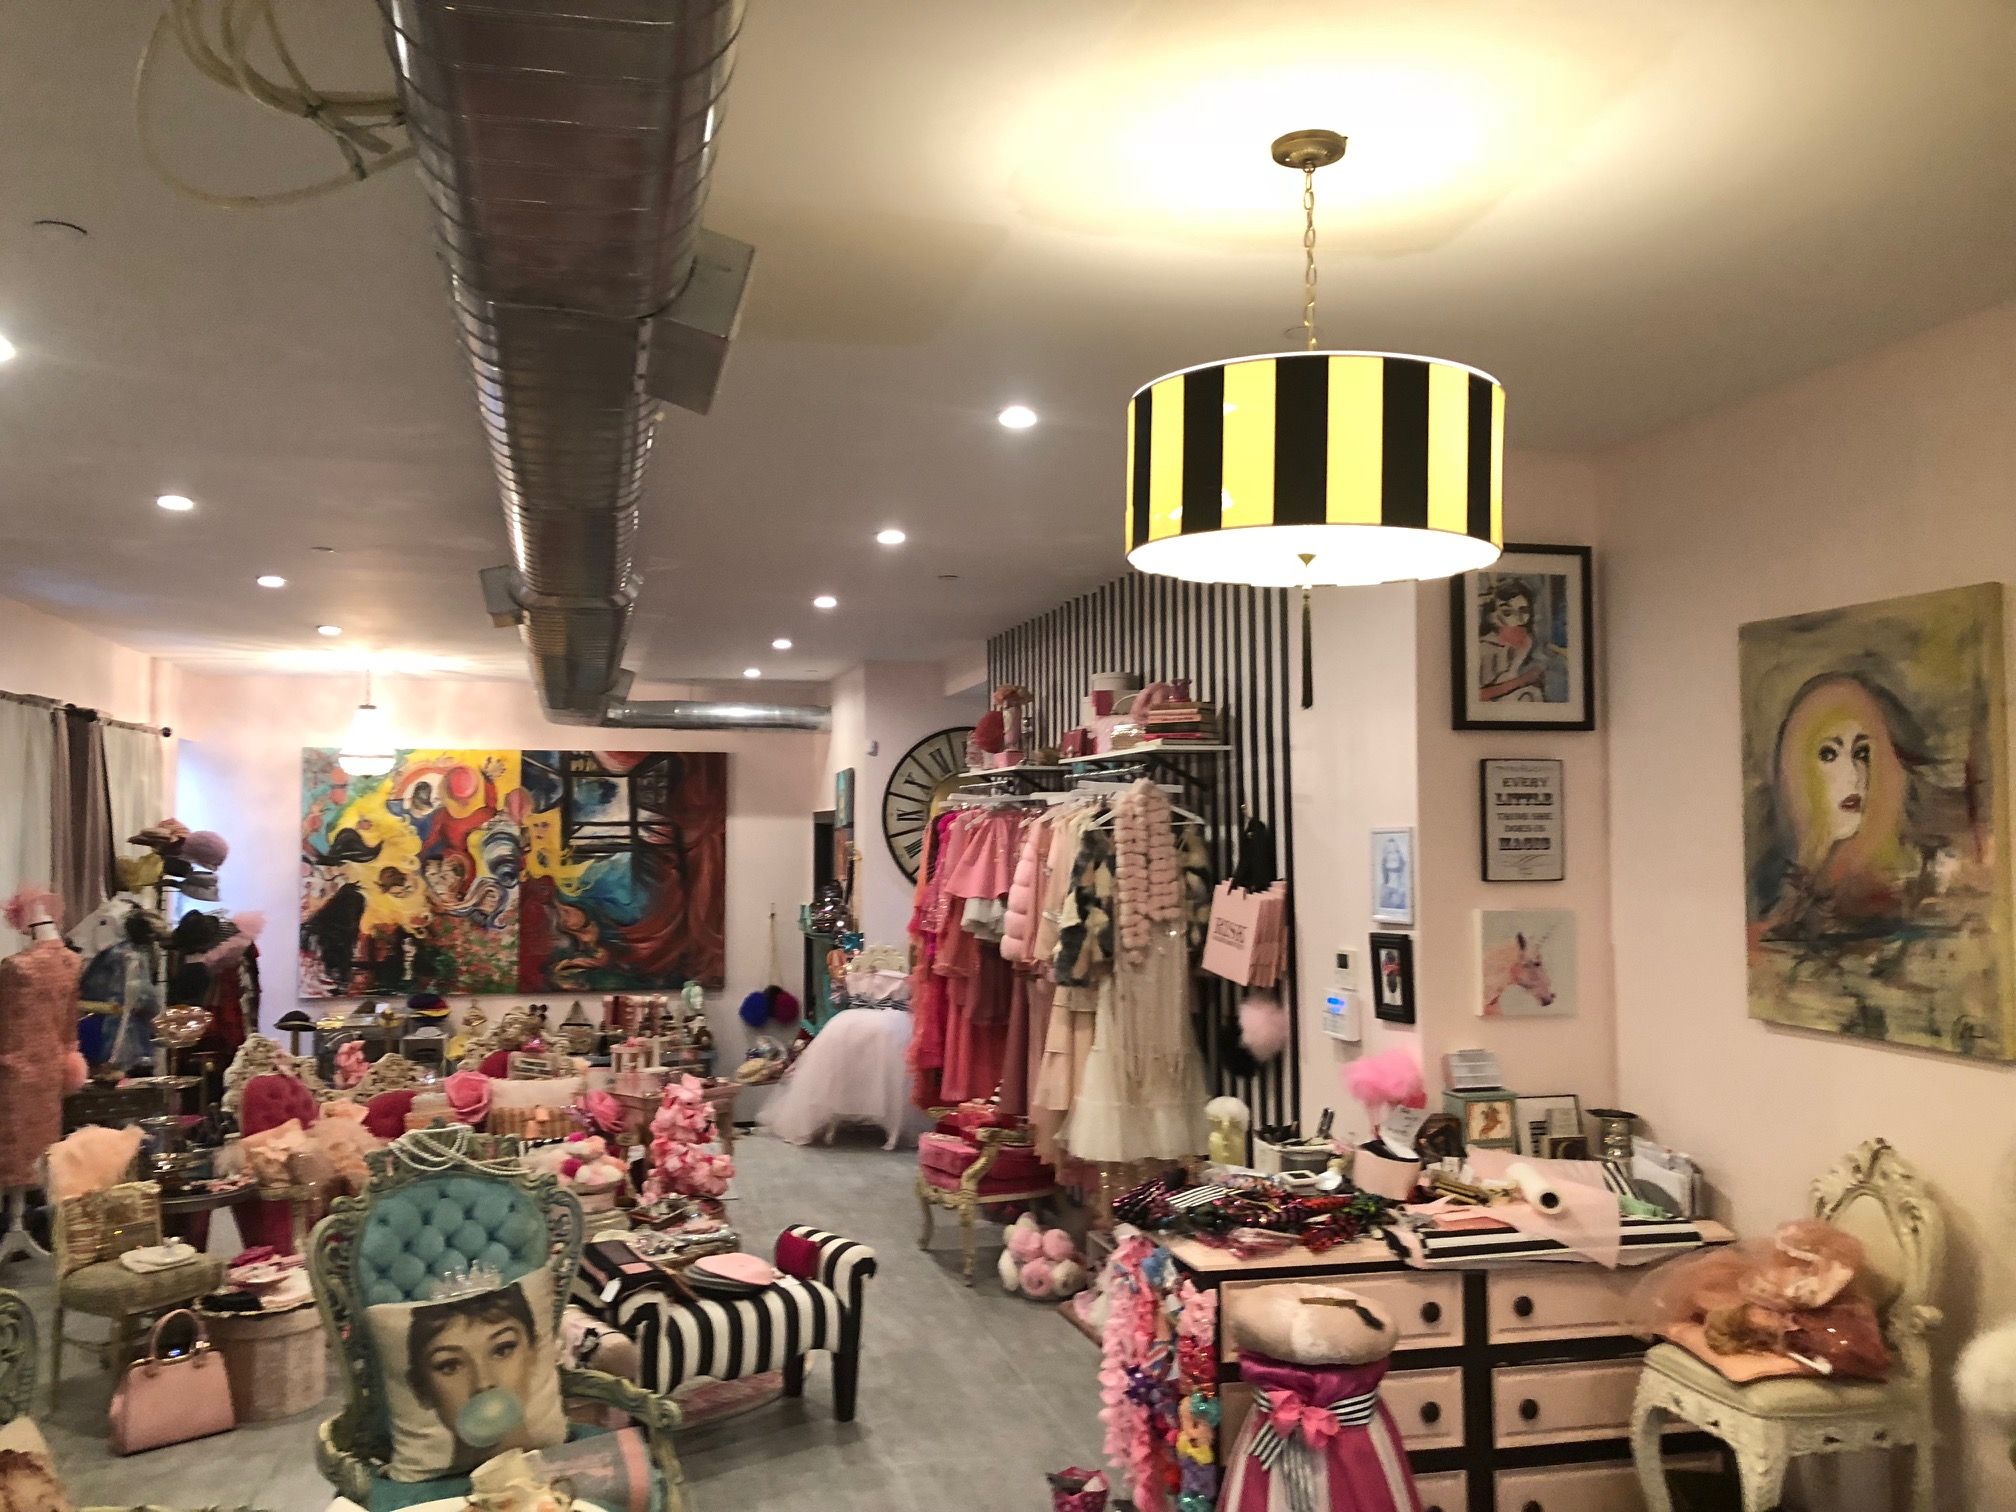 Spacious Beautiful and Elegant Art Gallery & Clothing Boutique in Brooklyn